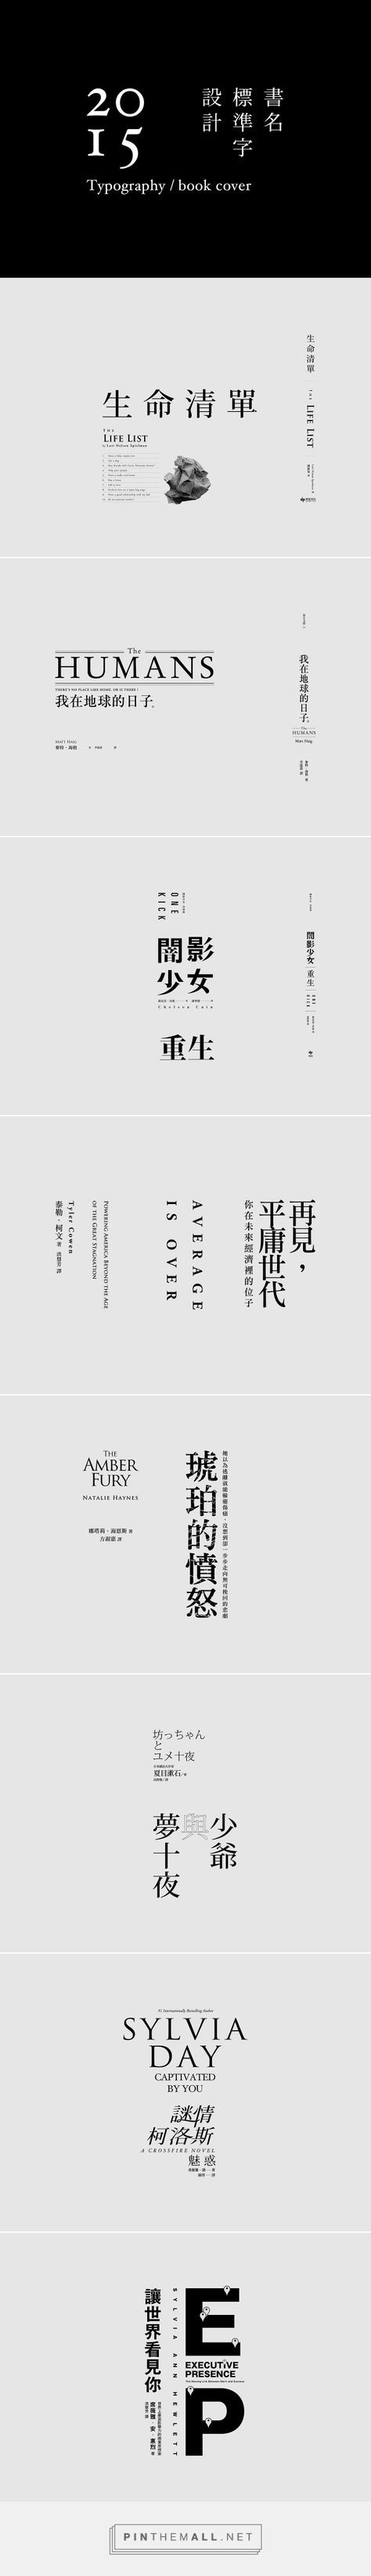 書名標準字設計 / Typography / book cover / 2015 on Behance